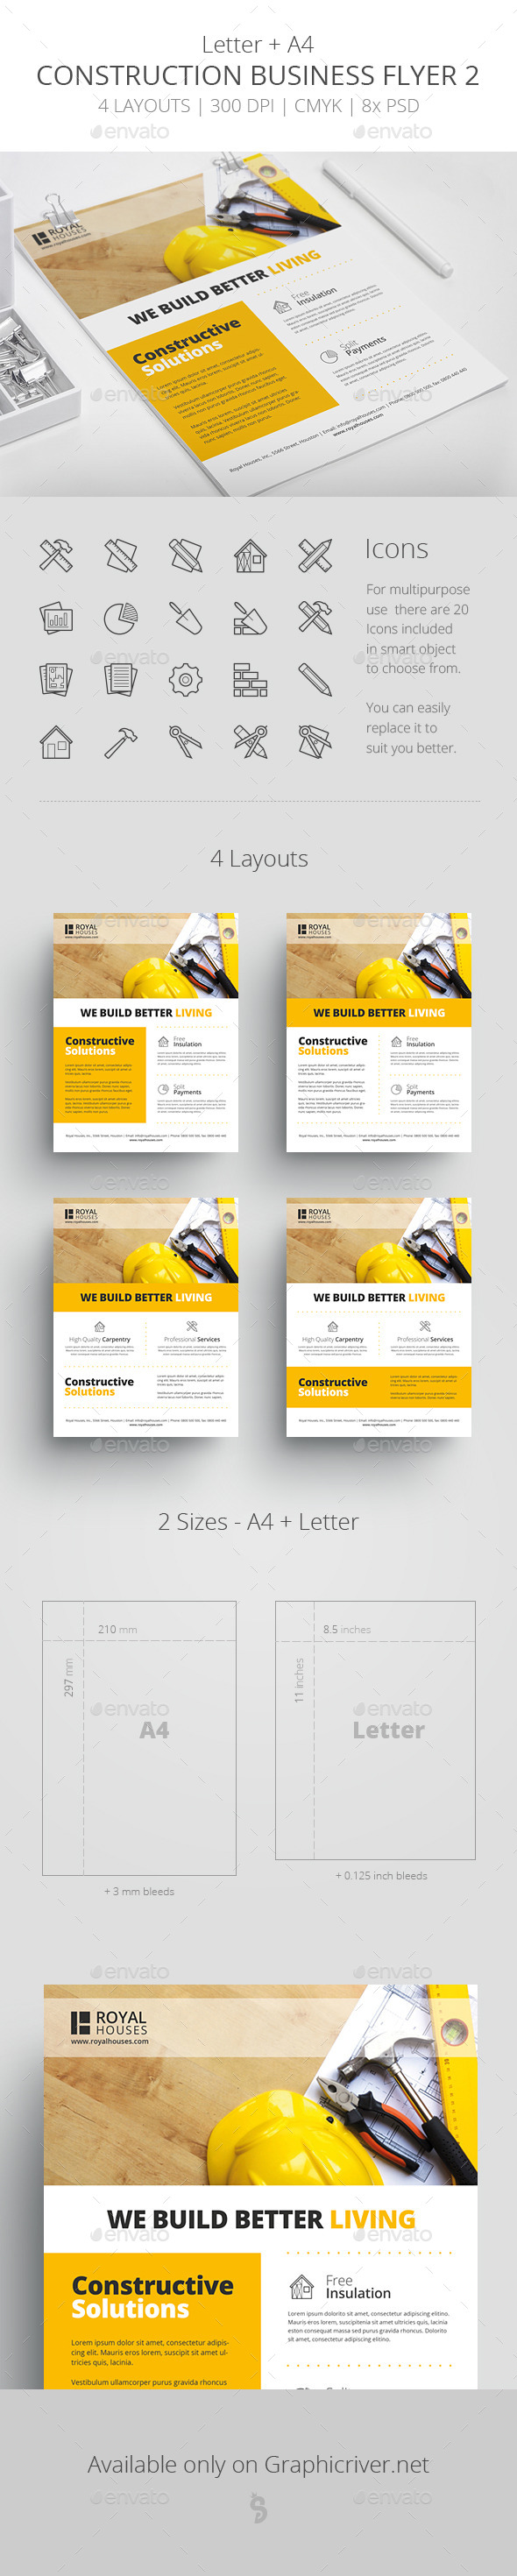 GraphicRiver Construction Business Flyer 2 Letter & A4 11220938